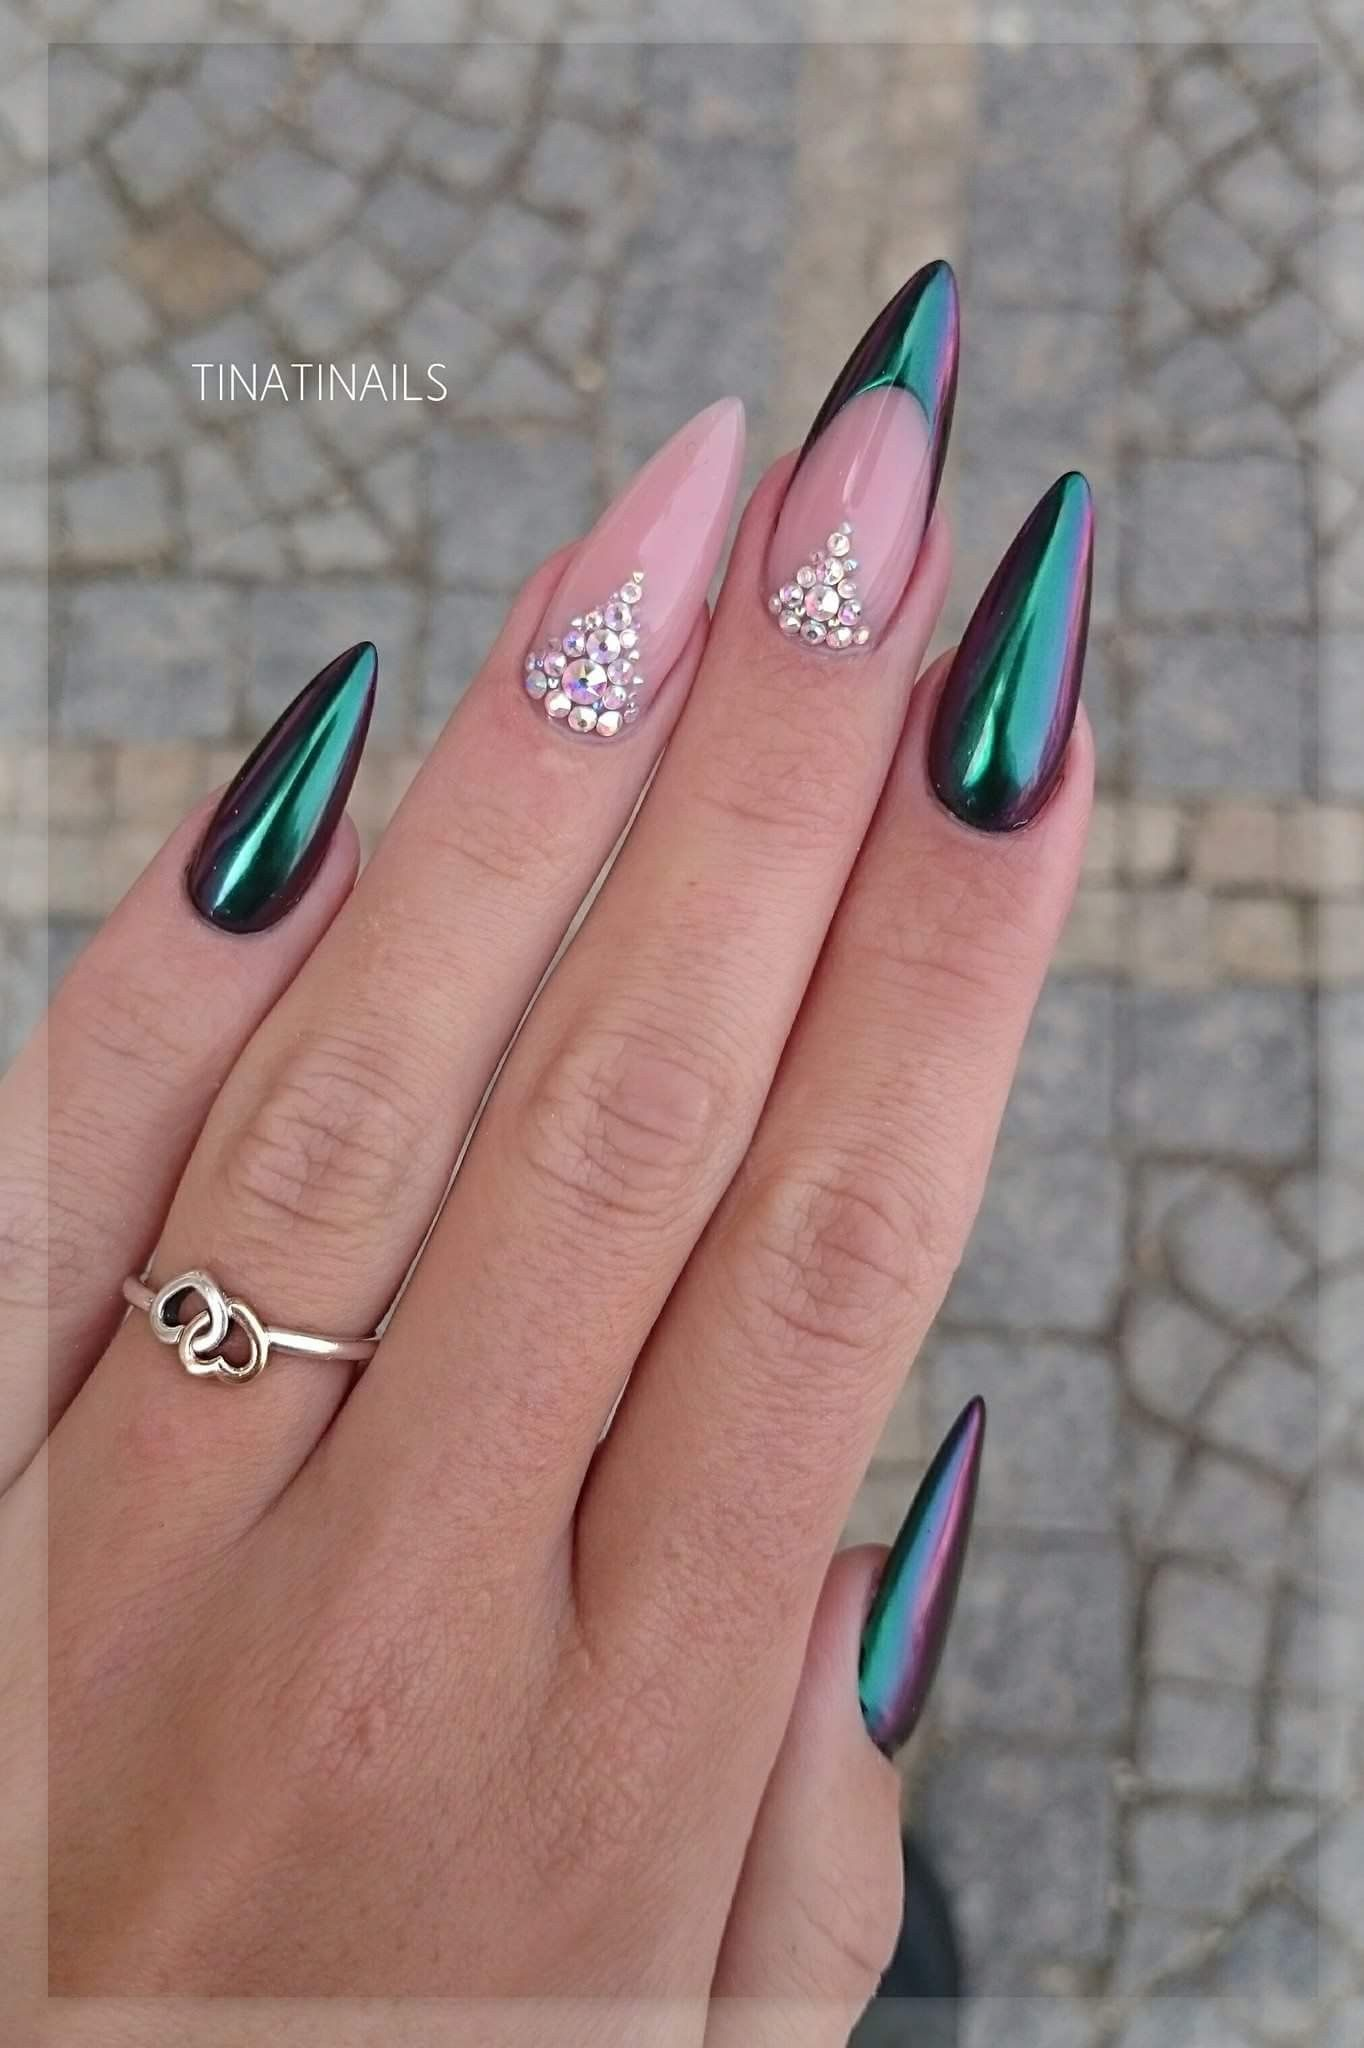 Pin by Jane on Nail ideas | Pinterest | Crazy nails